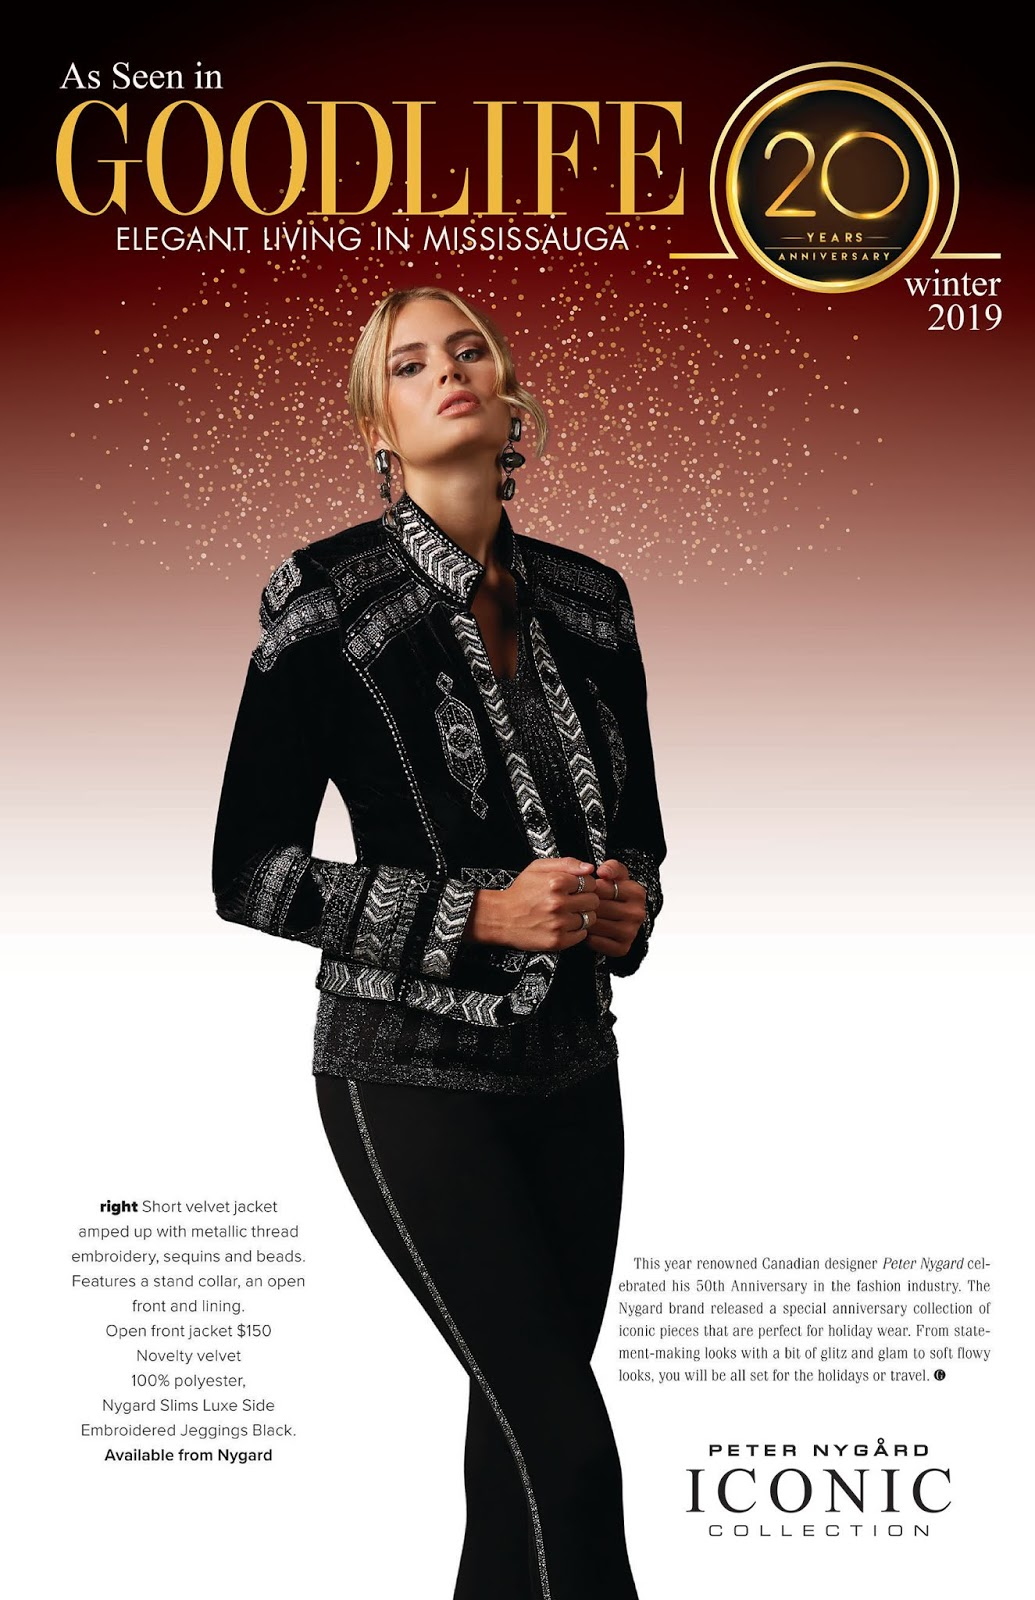 7d9f93e22f5aa The Good Life - Nygard Fashions 50 Years in Review.